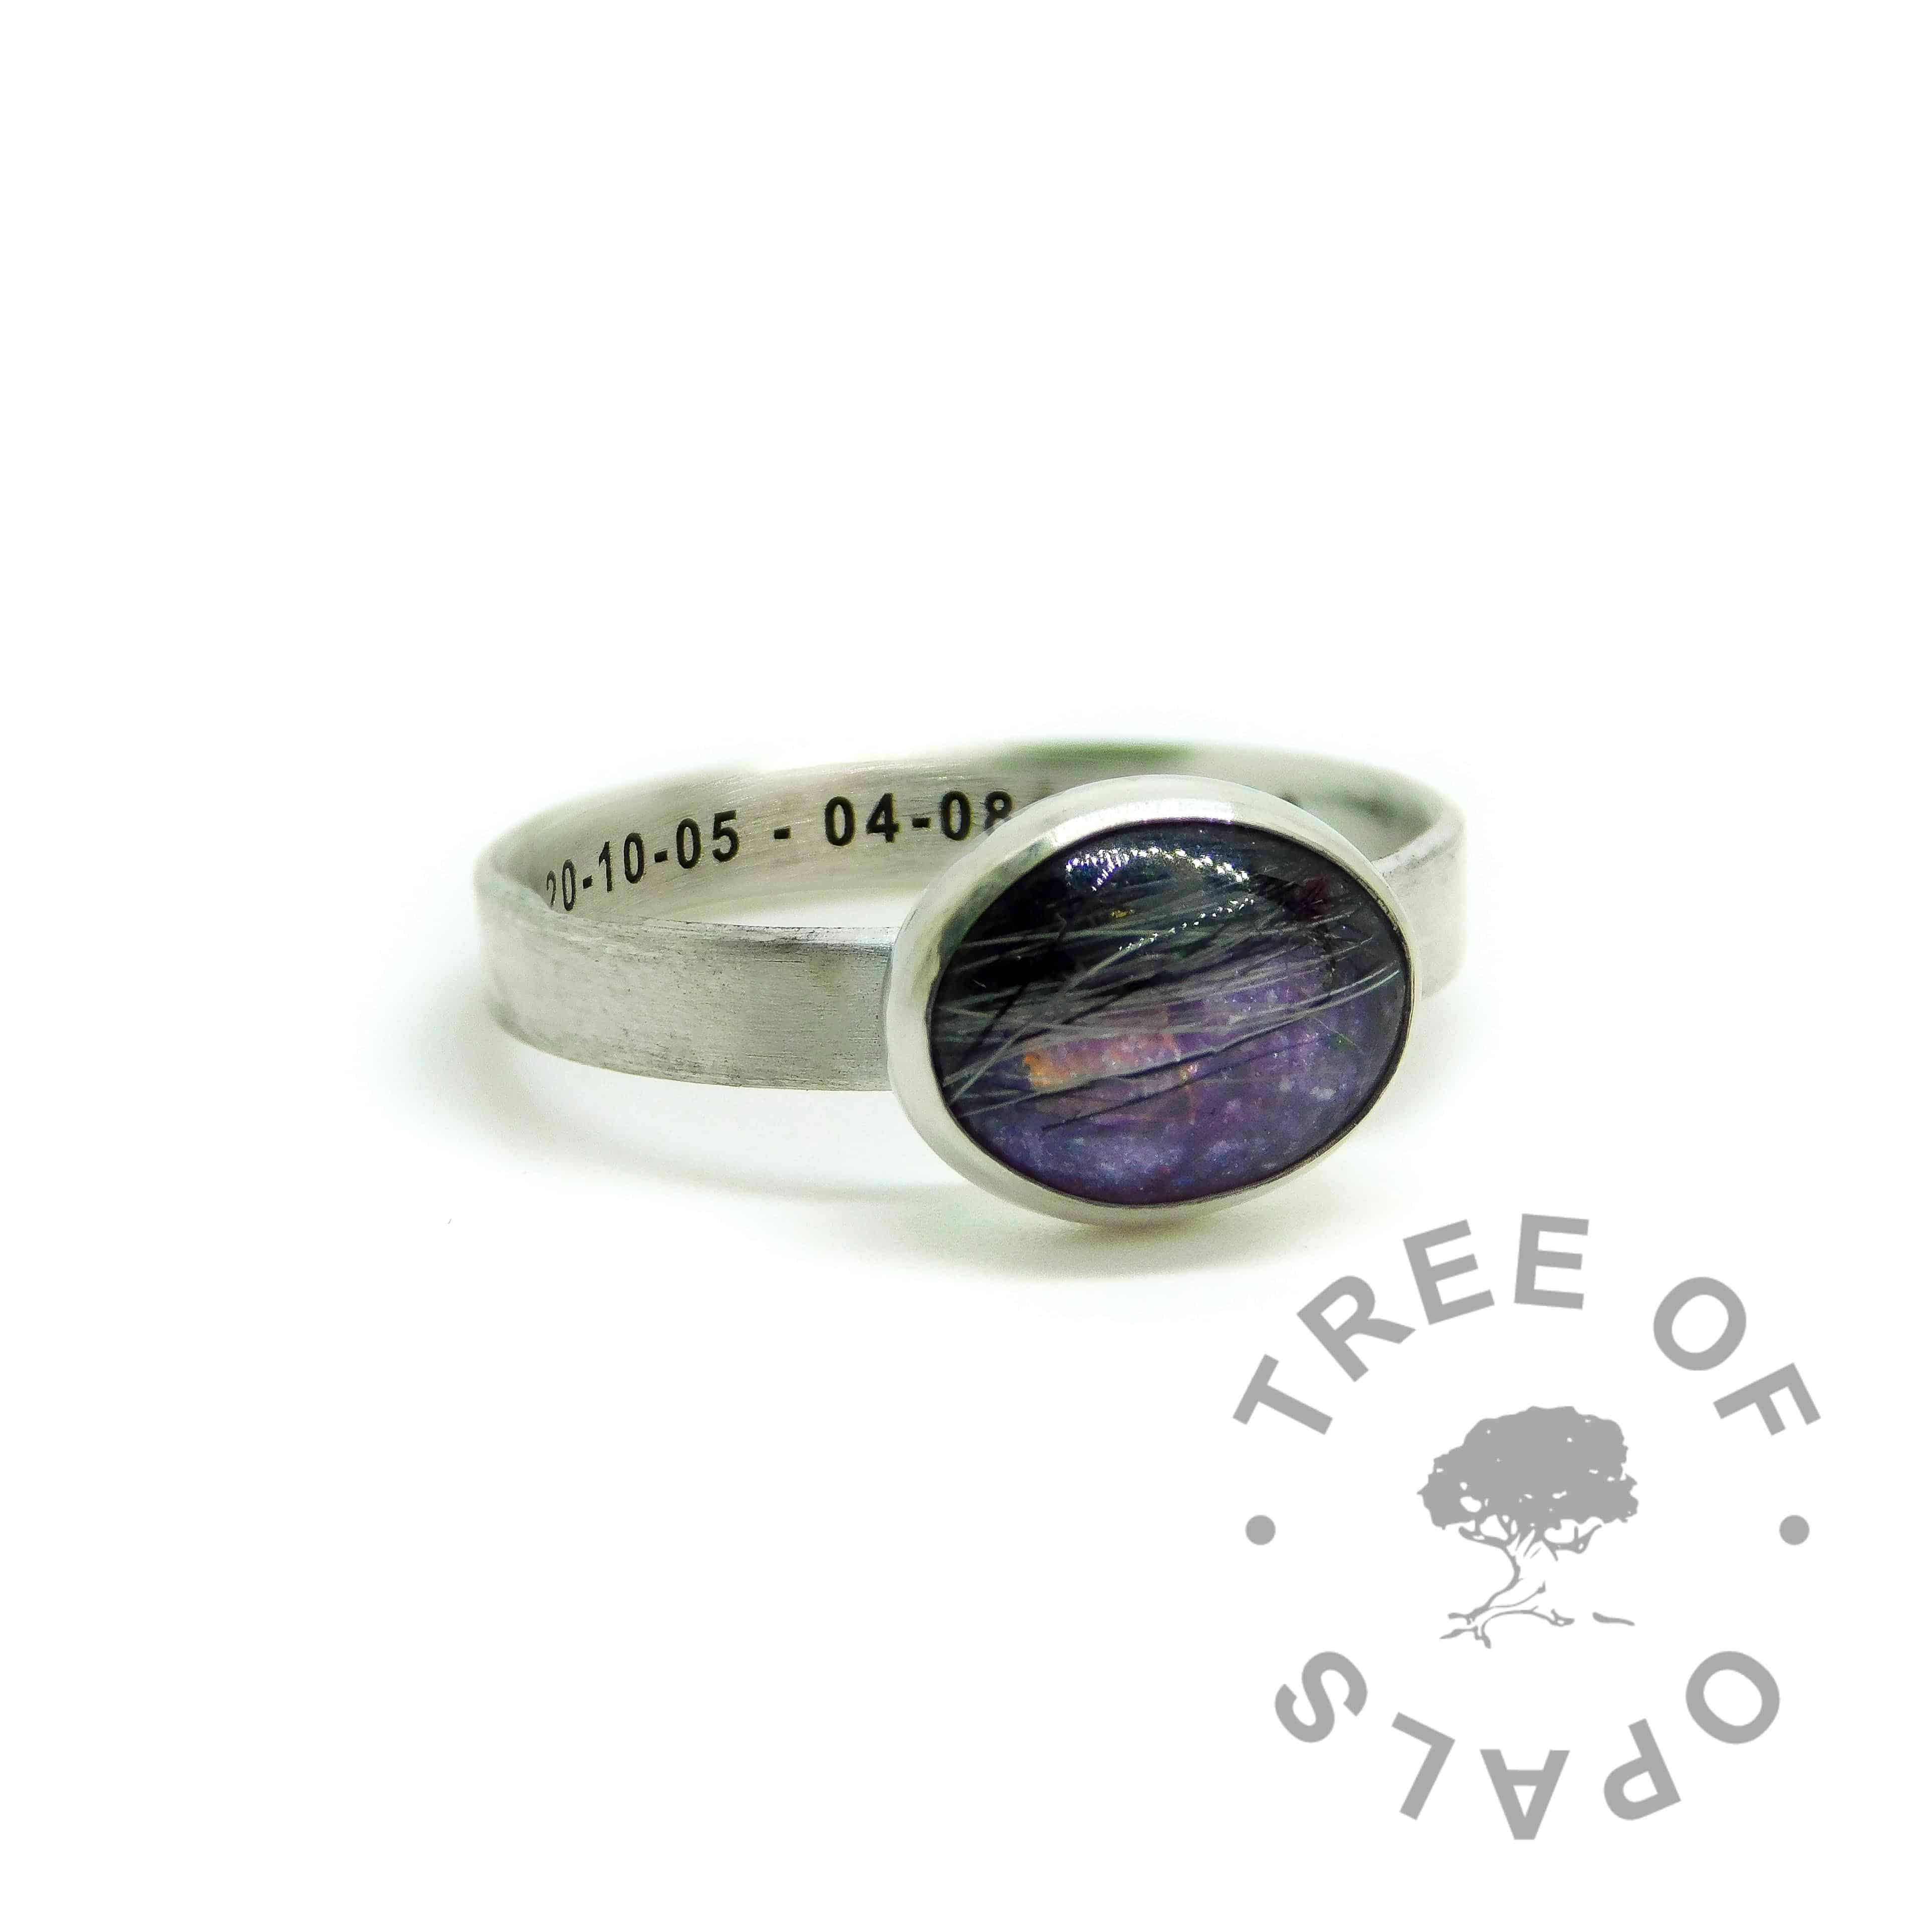 fur ring engraved with memorial dates in arial font, orchid purple sparkle mix, brushed band